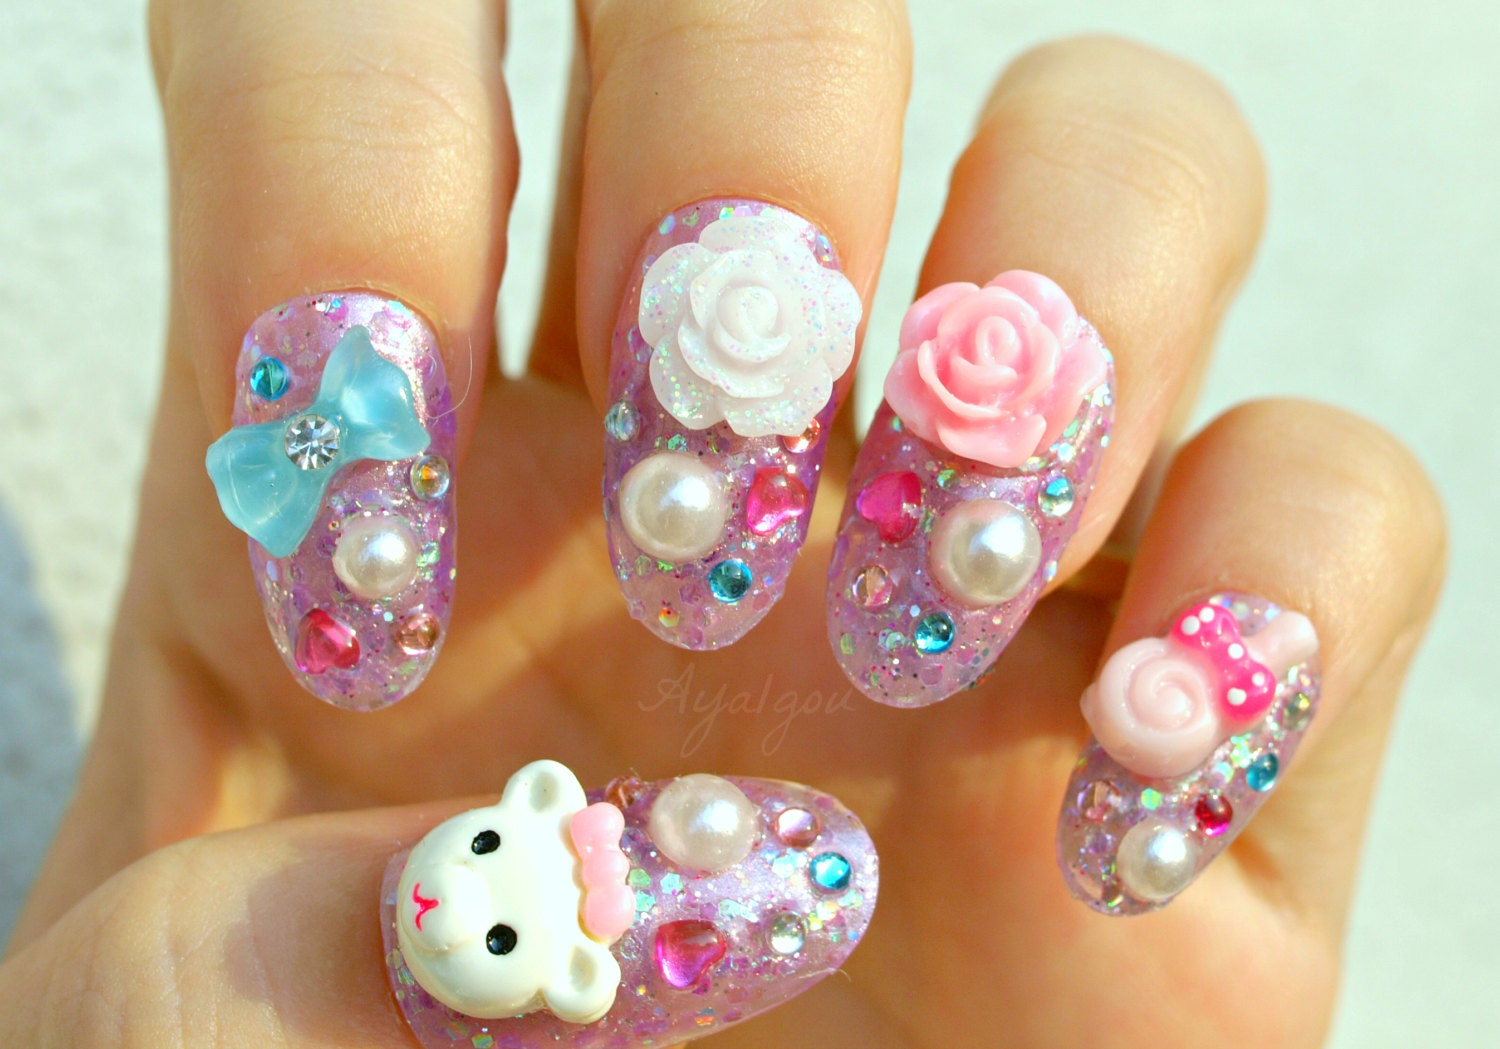 Pastel nail deco nails 3D nail pastel whimsical teddy